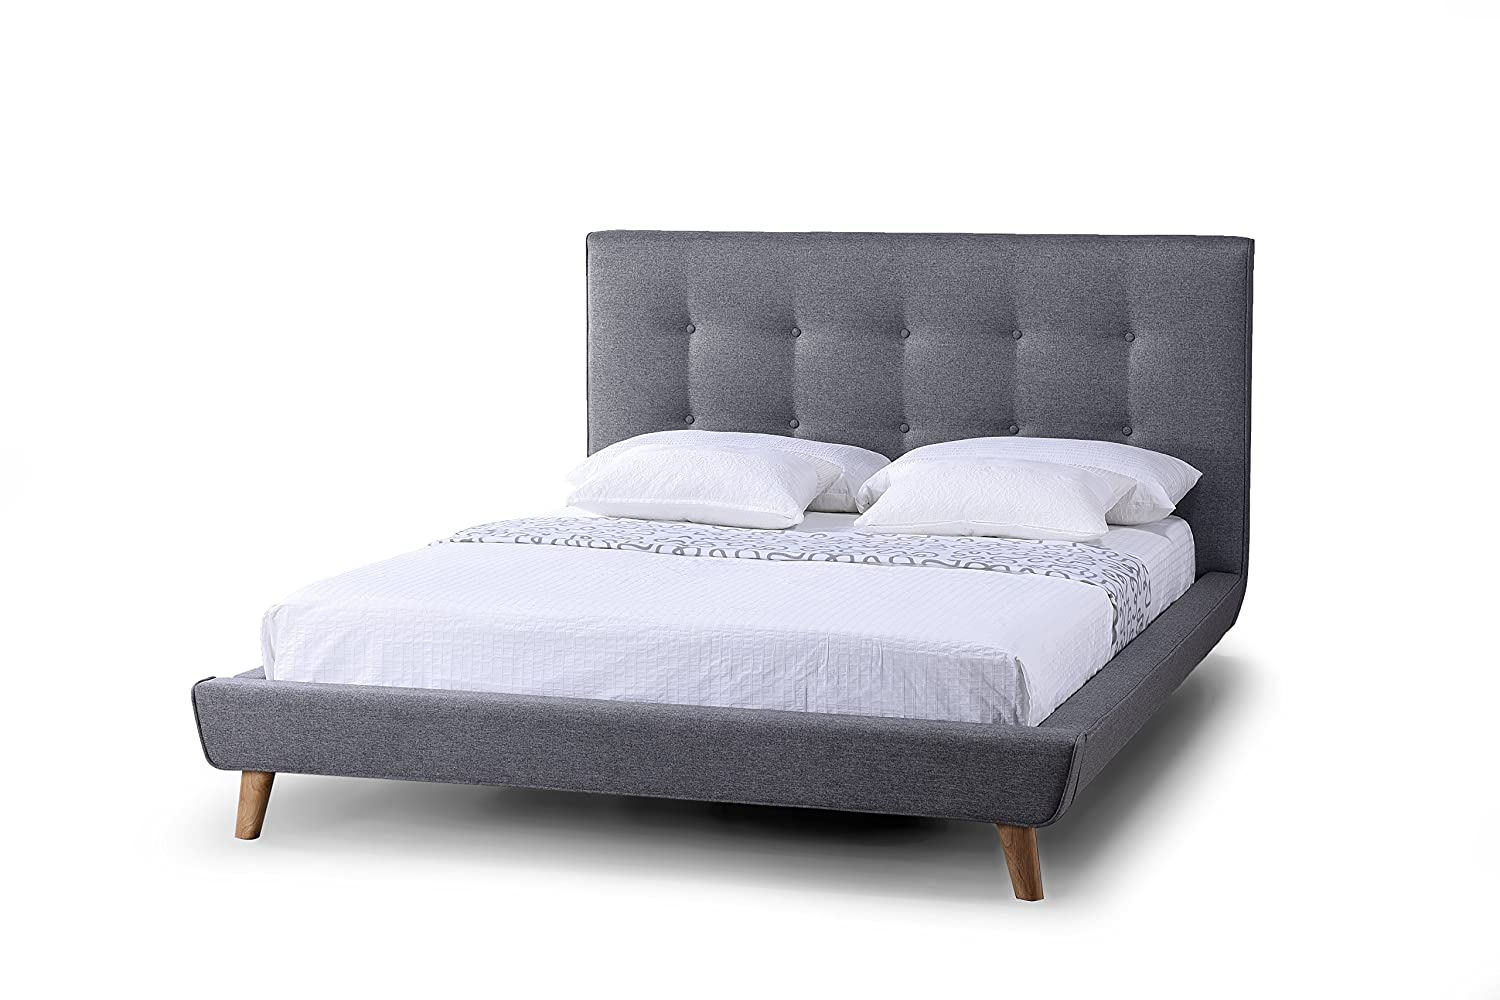 factory price 9272b dddb9 Baxton Studio Jonesy Scandinavian Style Mid Century Fabric Upholstered  Platform Bed, Queen, Grey